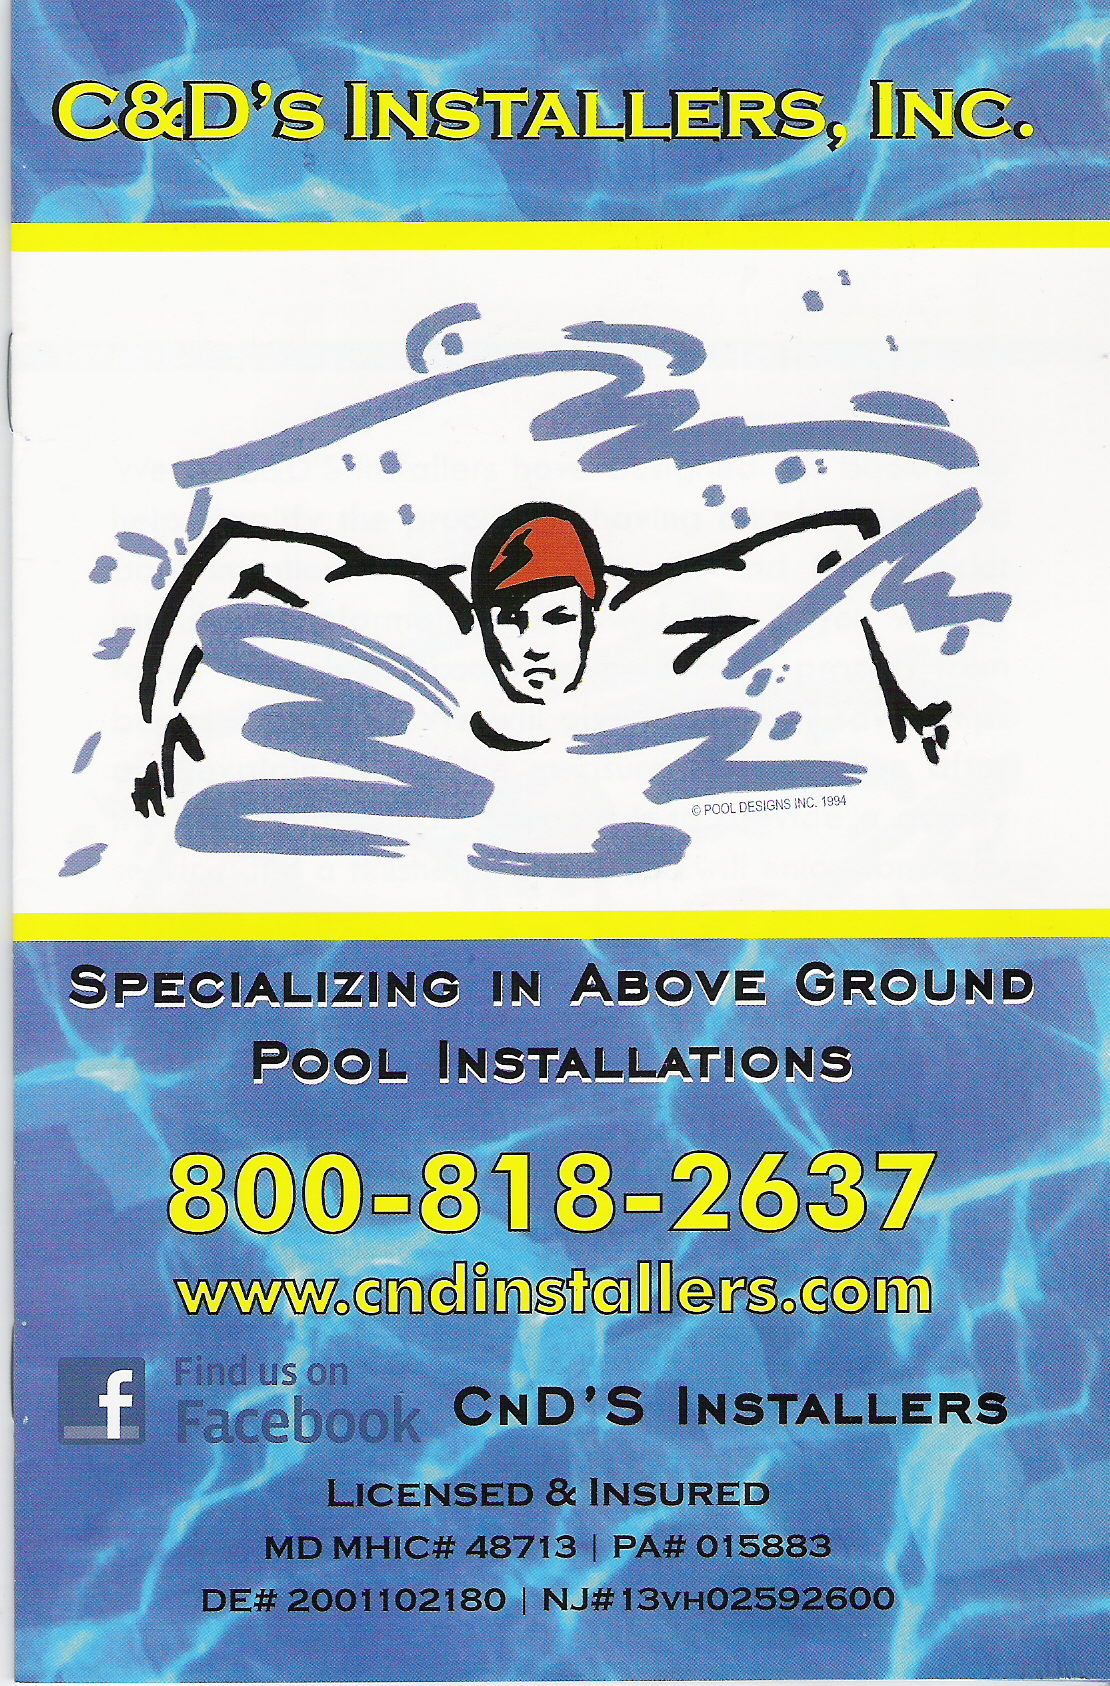 C&D'S Installers, Inc image 9